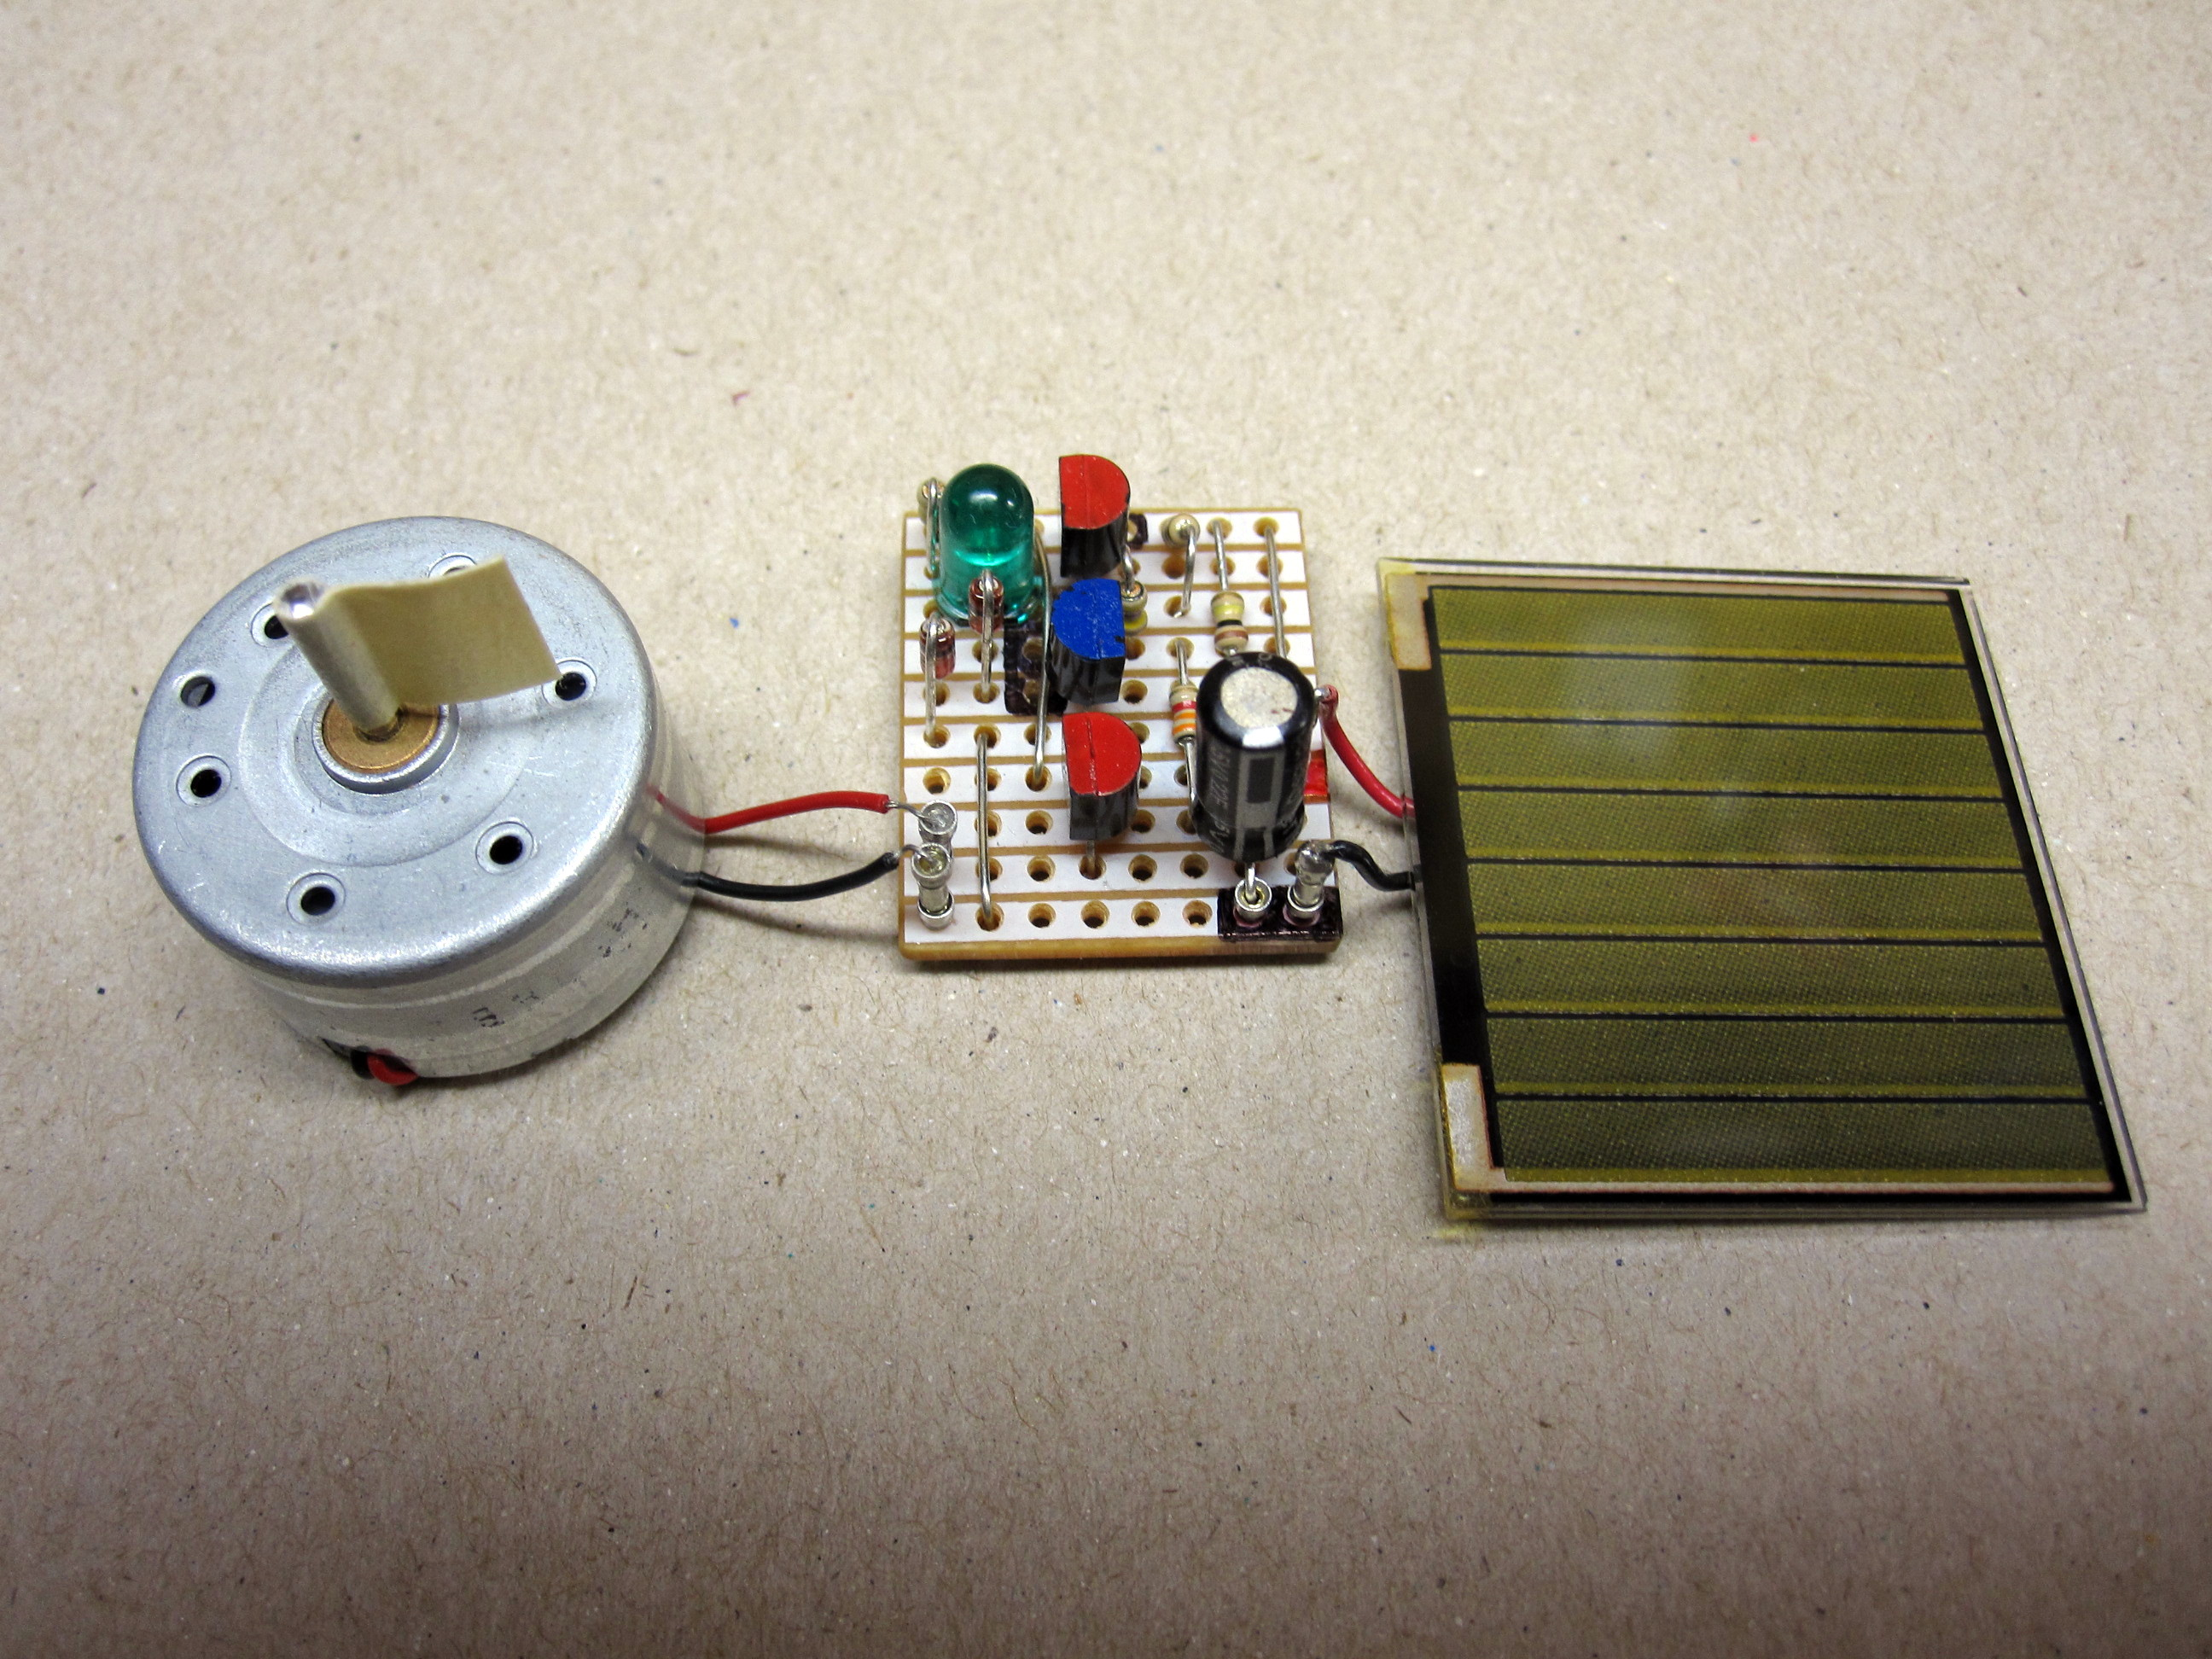 Picture of Stripboard Layout